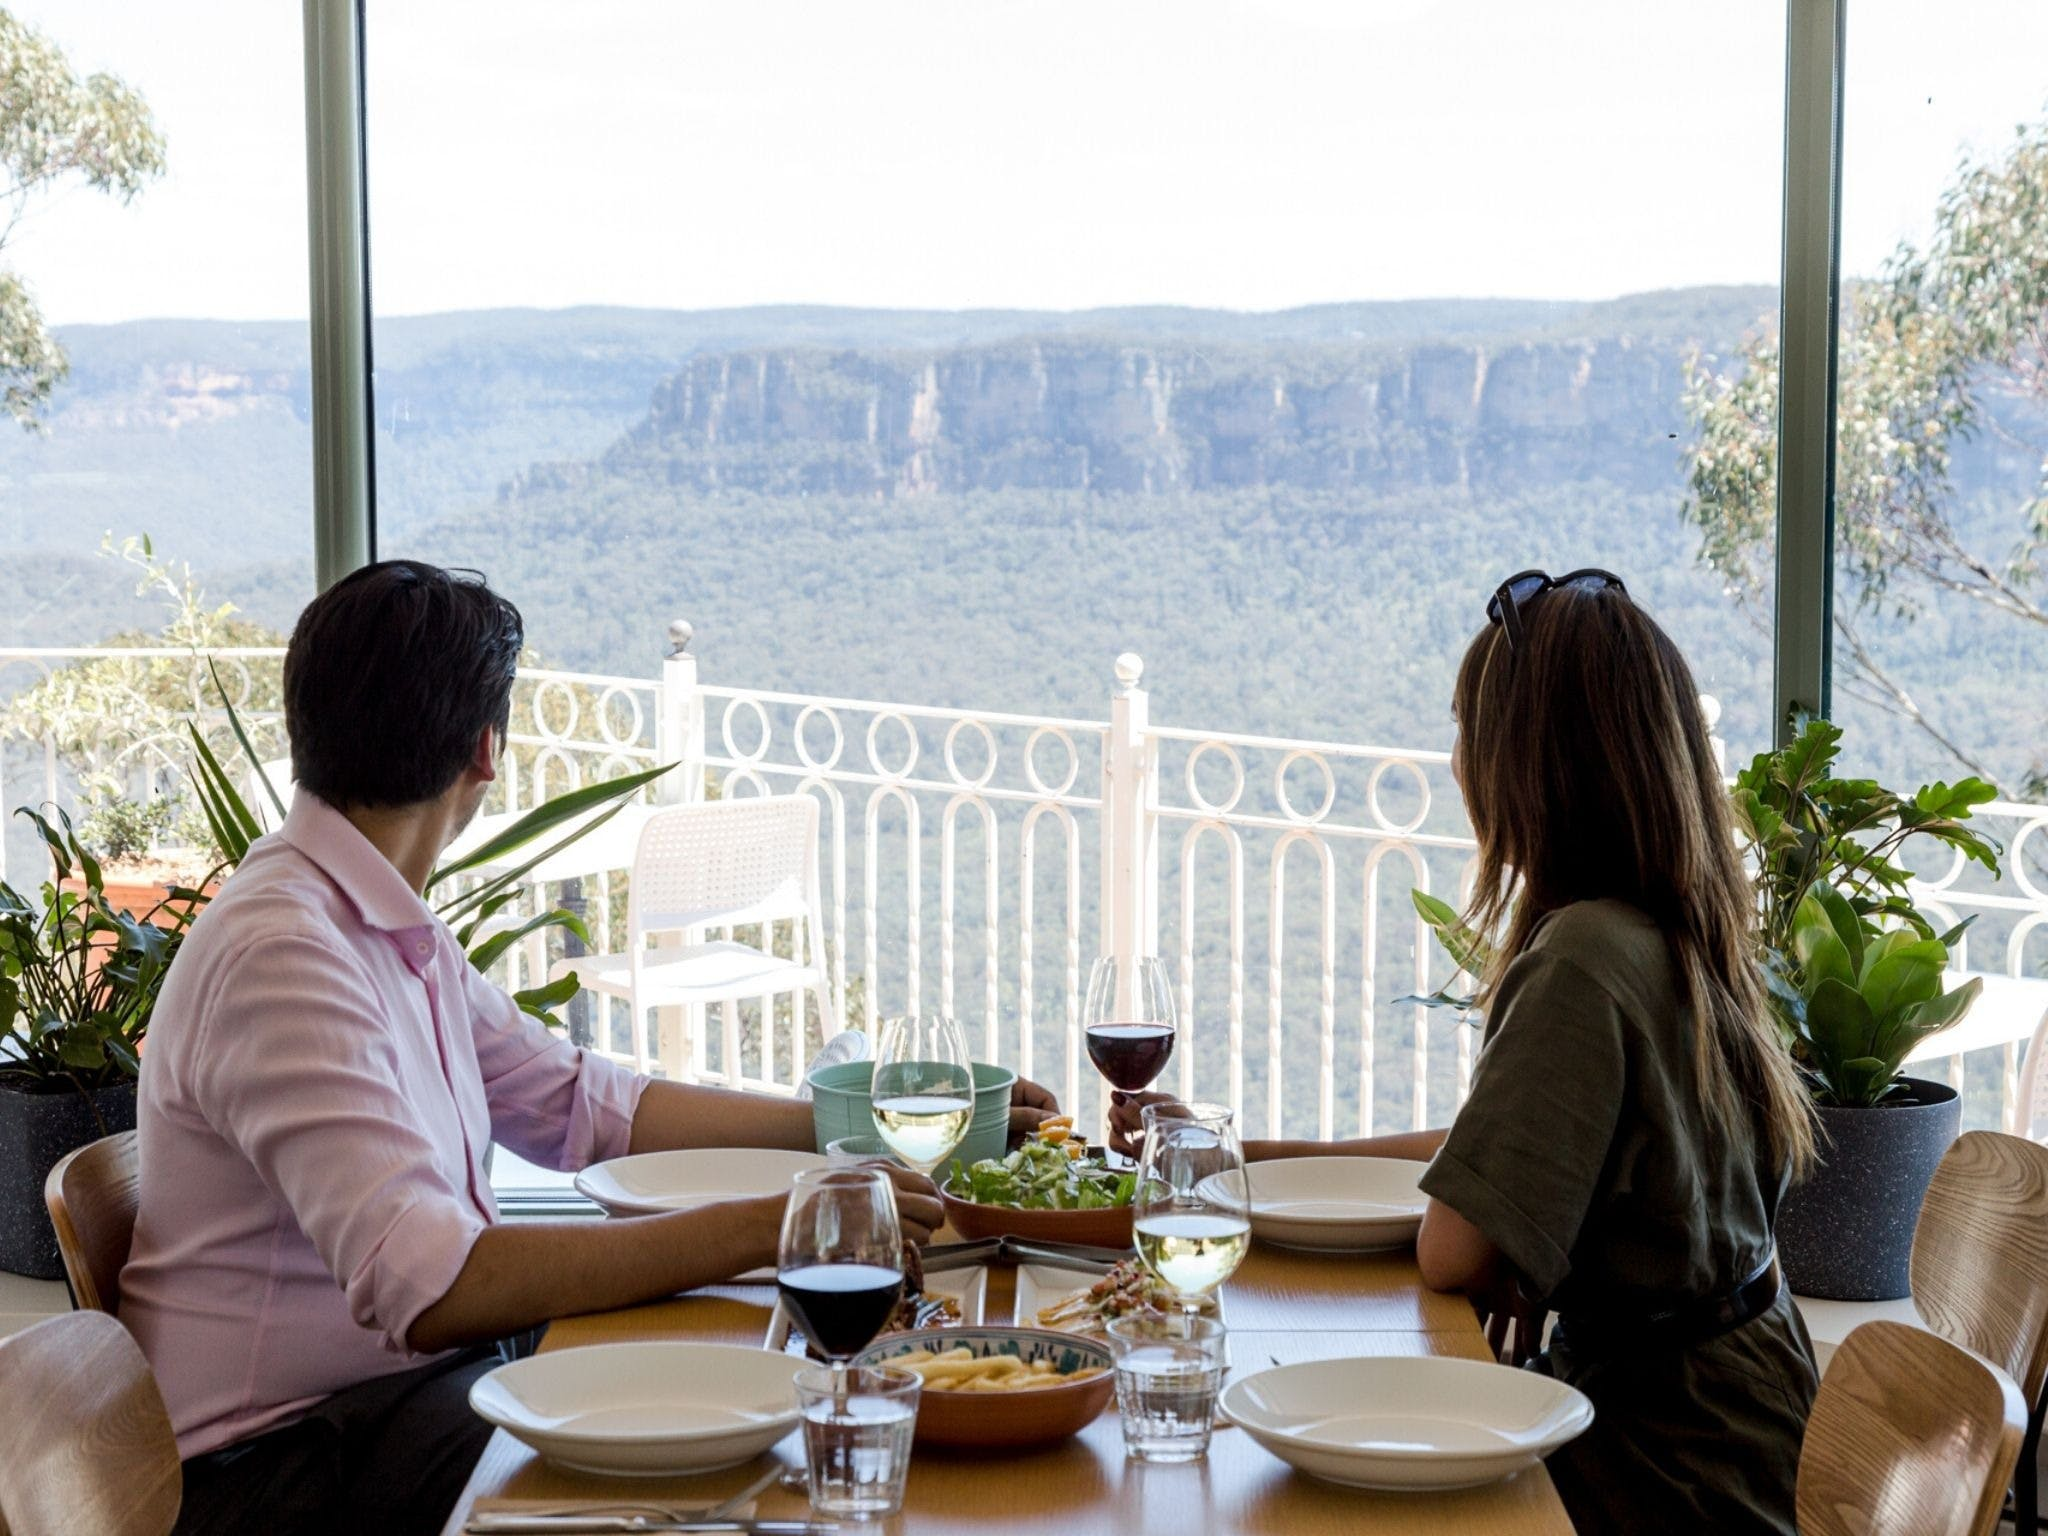 Christmas Day Lunch at The Lookout Echo Point - Accommodation Resorts